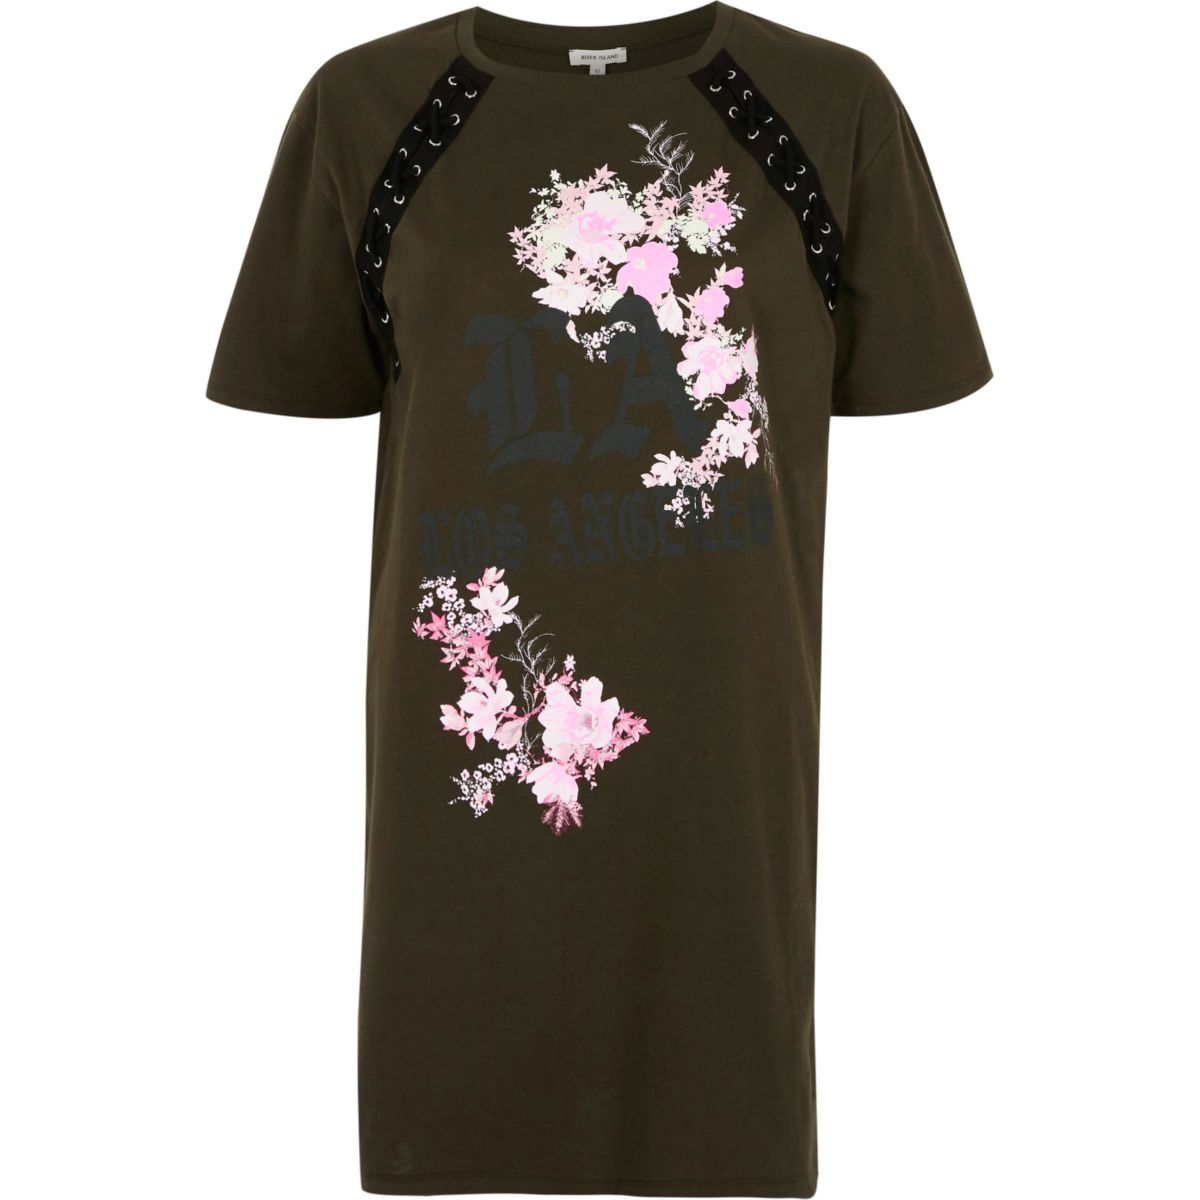 Khaki green floral lace-up oversized T-shirt